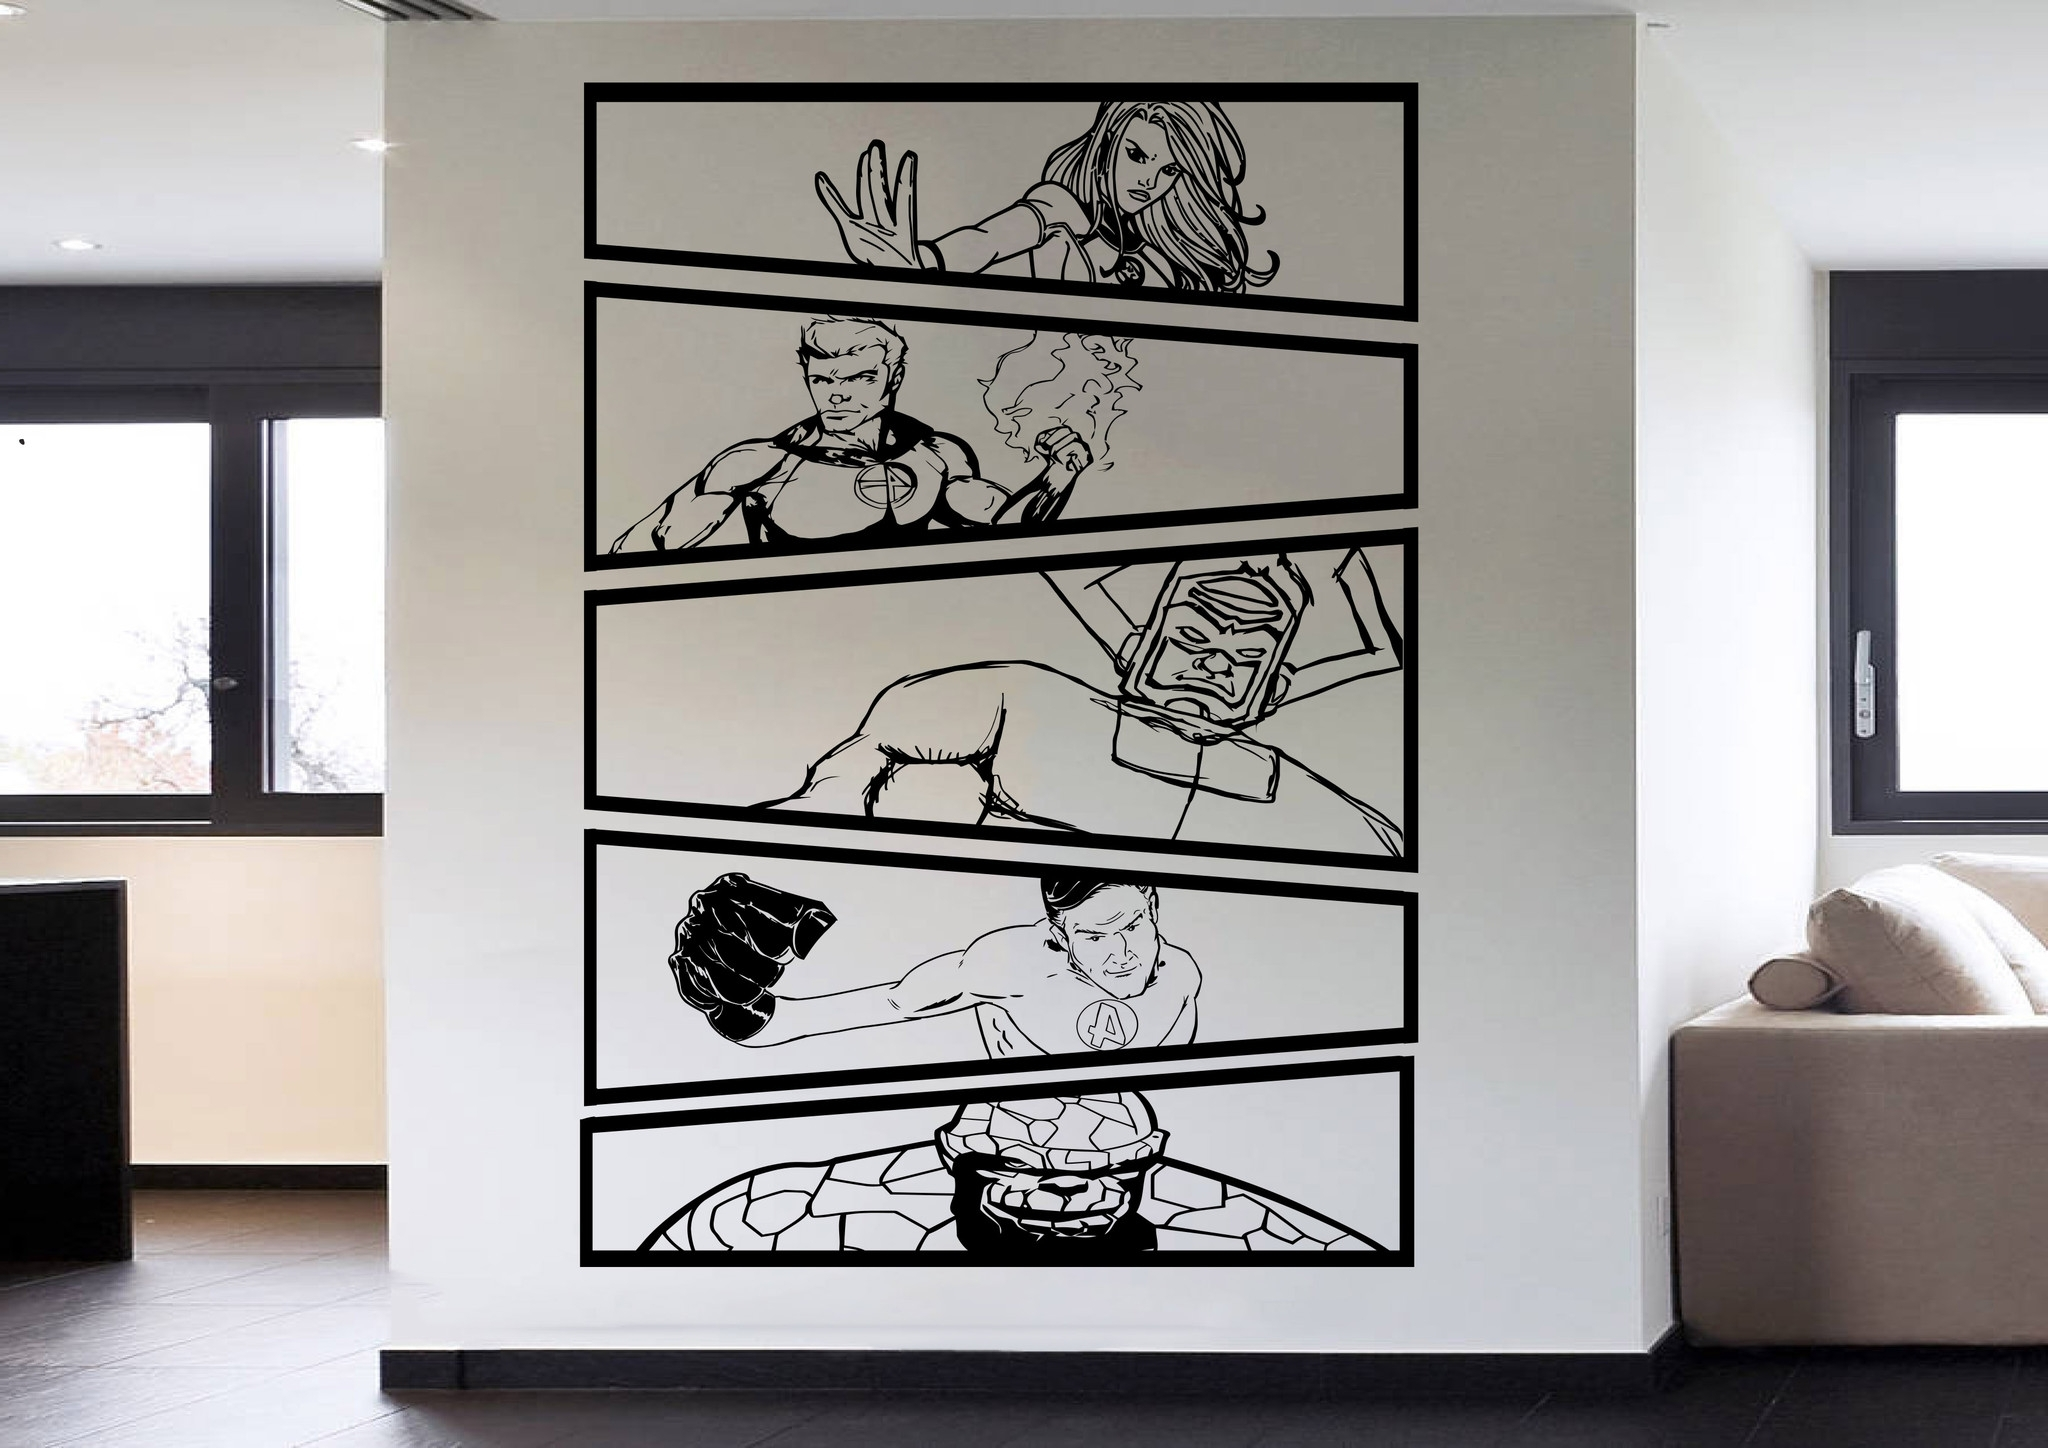 Fantastic 4 Vs Galactus Comic Strip 5 Panel Wall Art Stickers Pertaining To Most Current Superhero Wall Art Stickers (View 5 of 15)